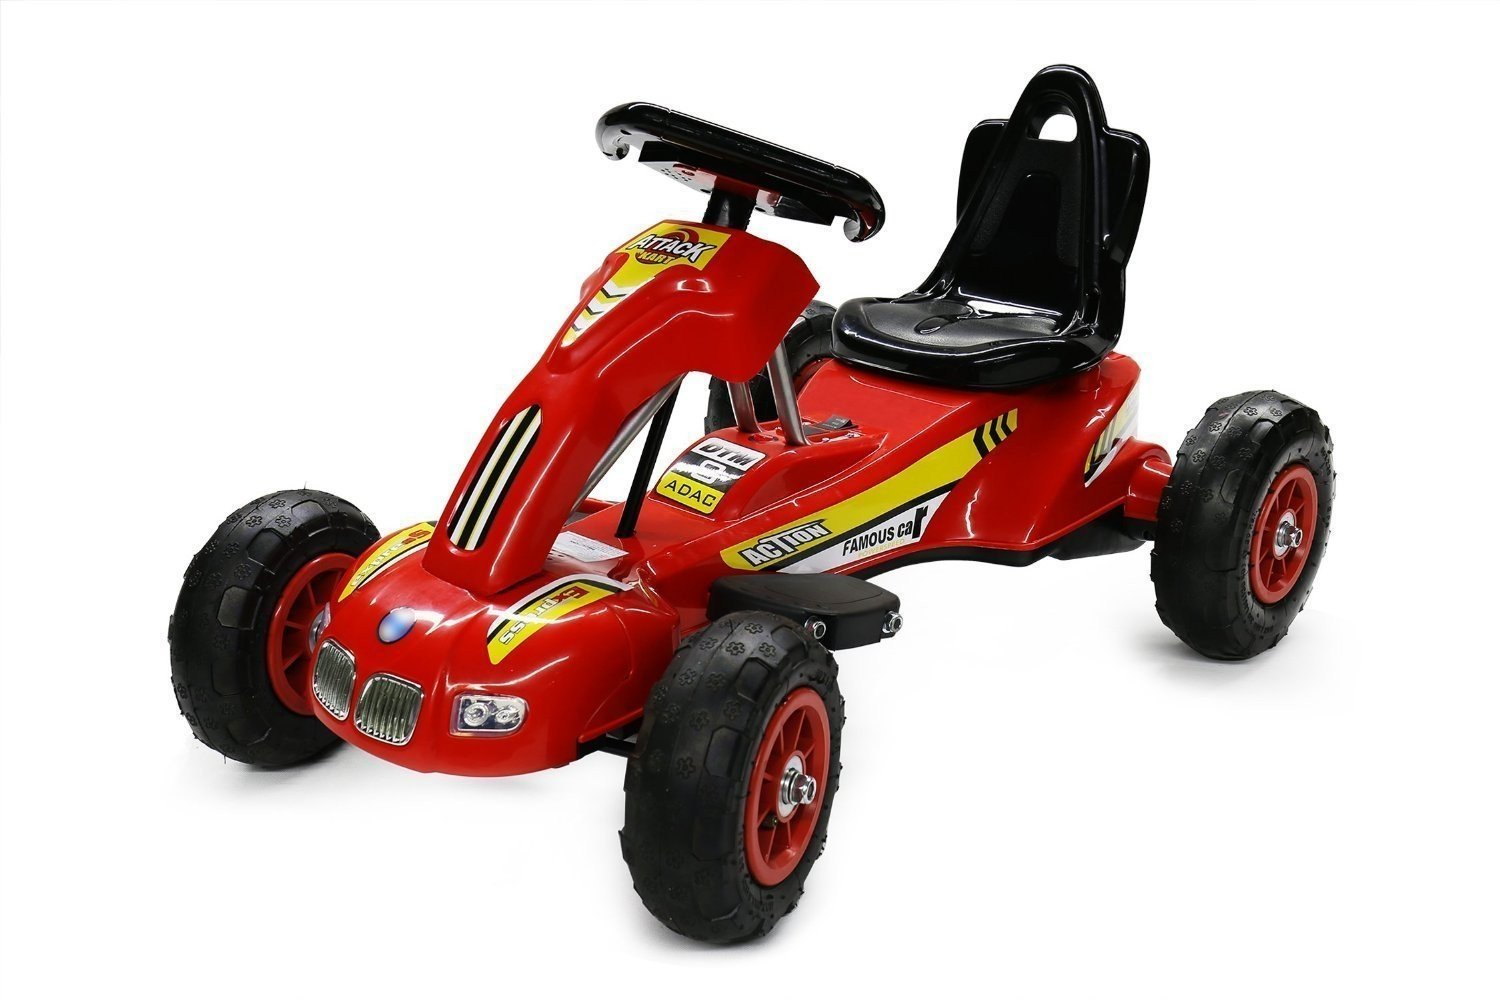 RideonToys4u 6V Electric Attack Kart With Air Rubber Wheels 3KM/H Red Ages 3-8